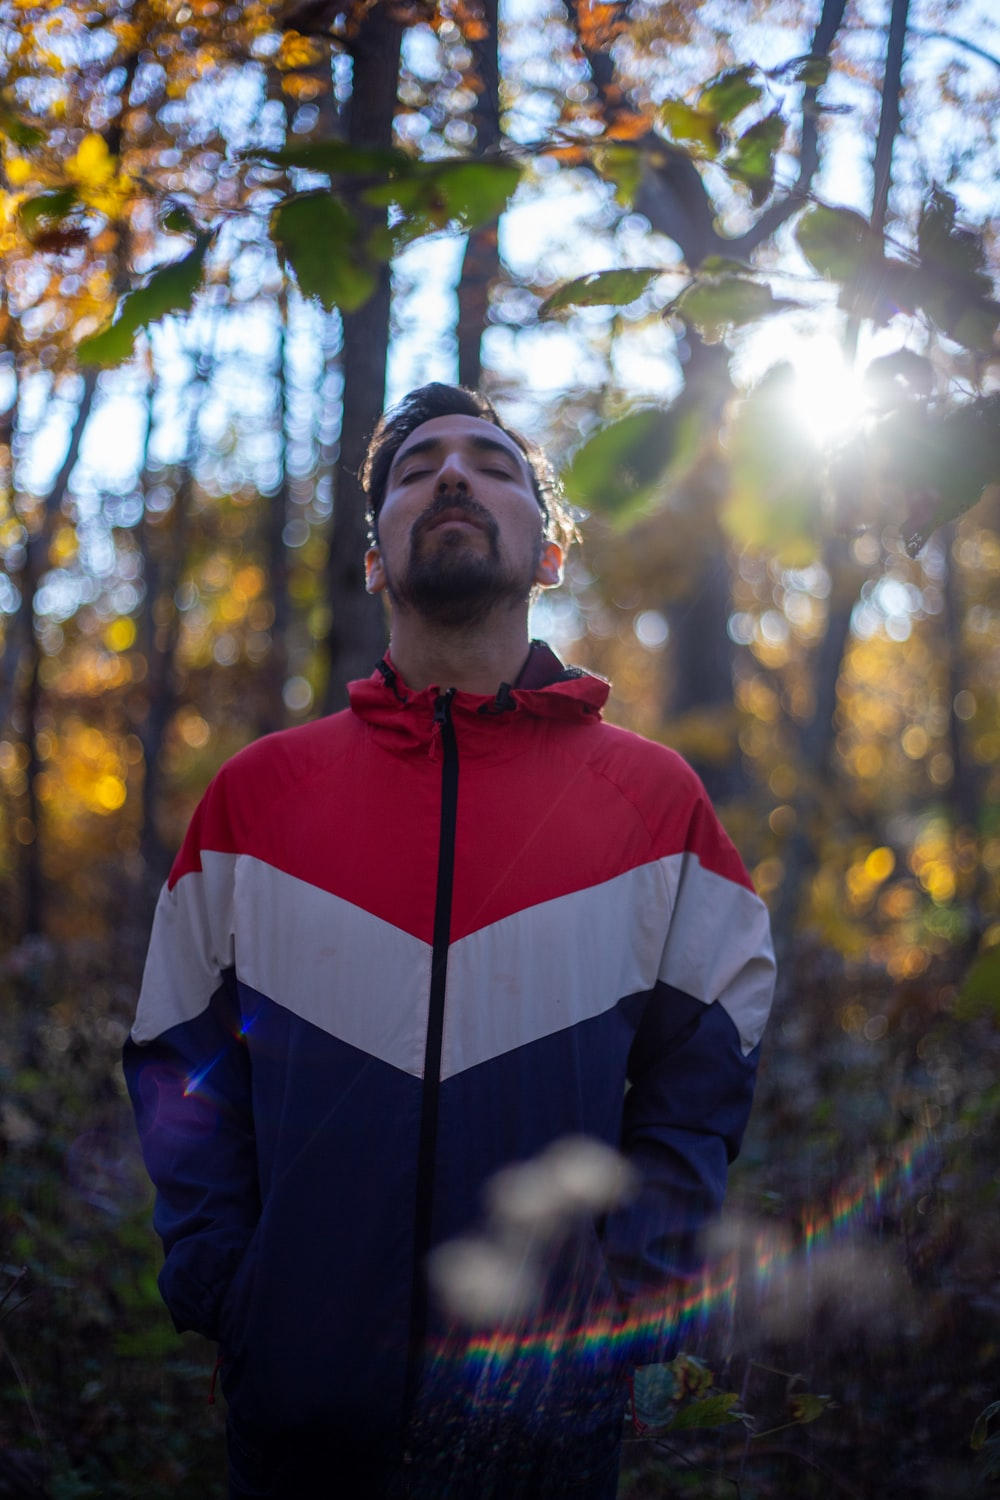 man in red, white, and blue zip-up jacket standing in forest